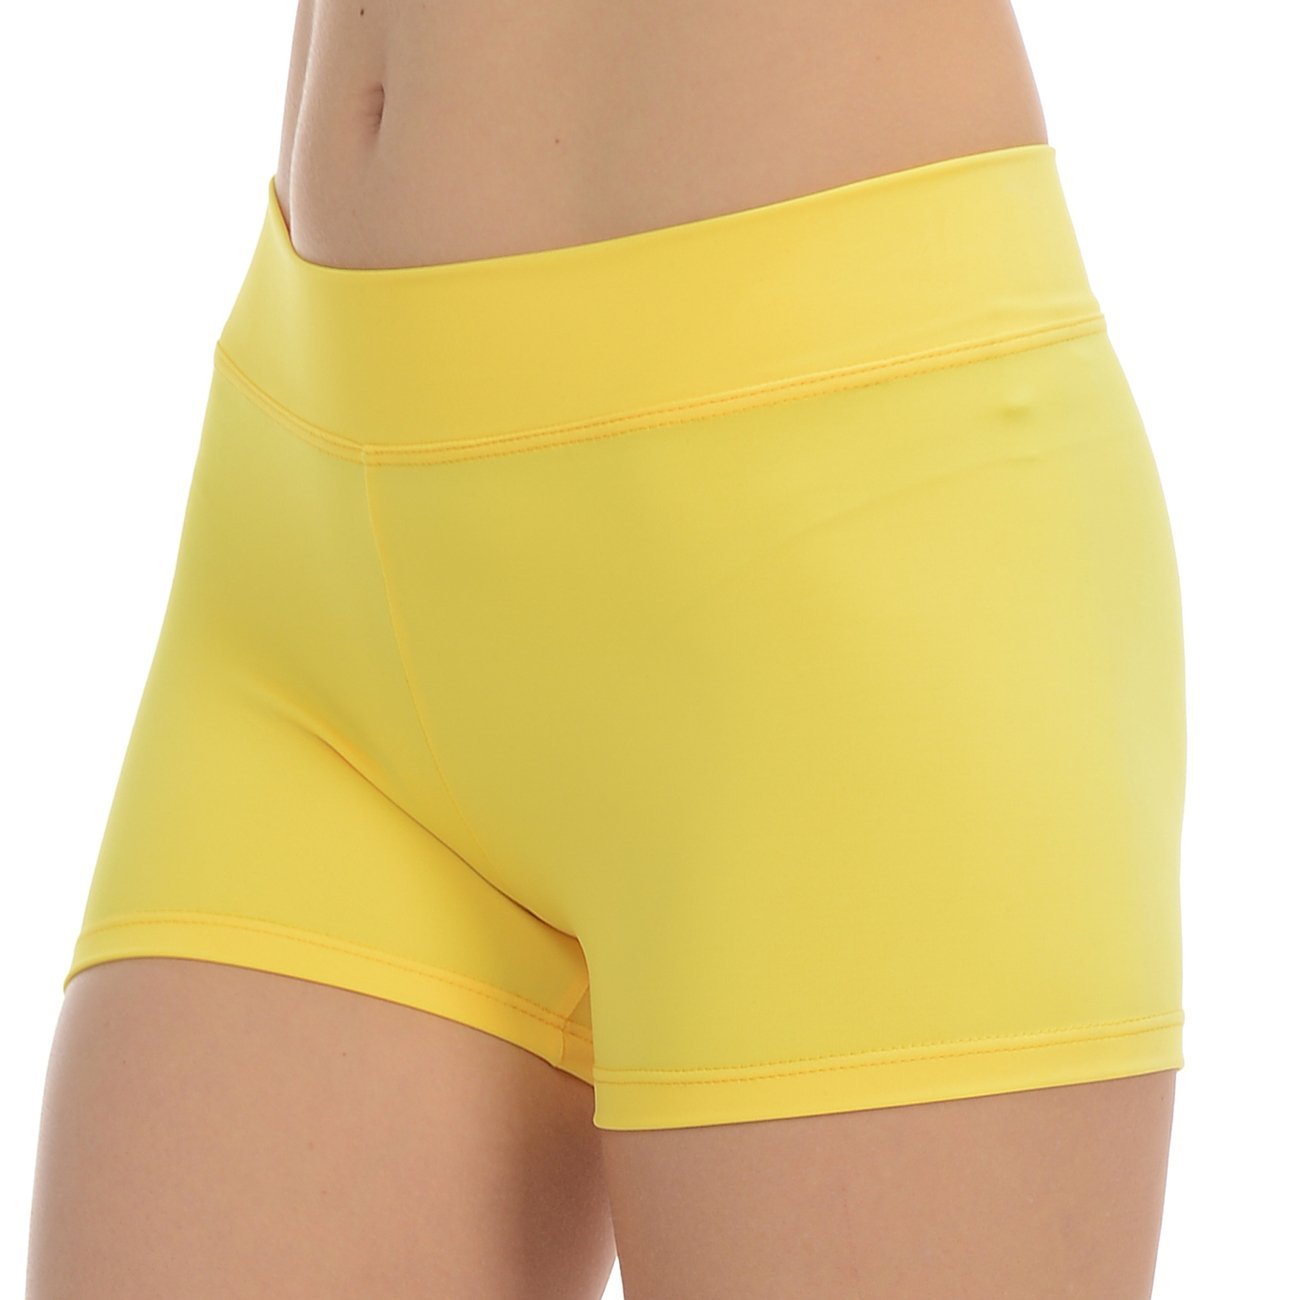 ANZA Girls Active Wear Dance Booty Shorts-Yellow,Large(12/14) by Anza Collection